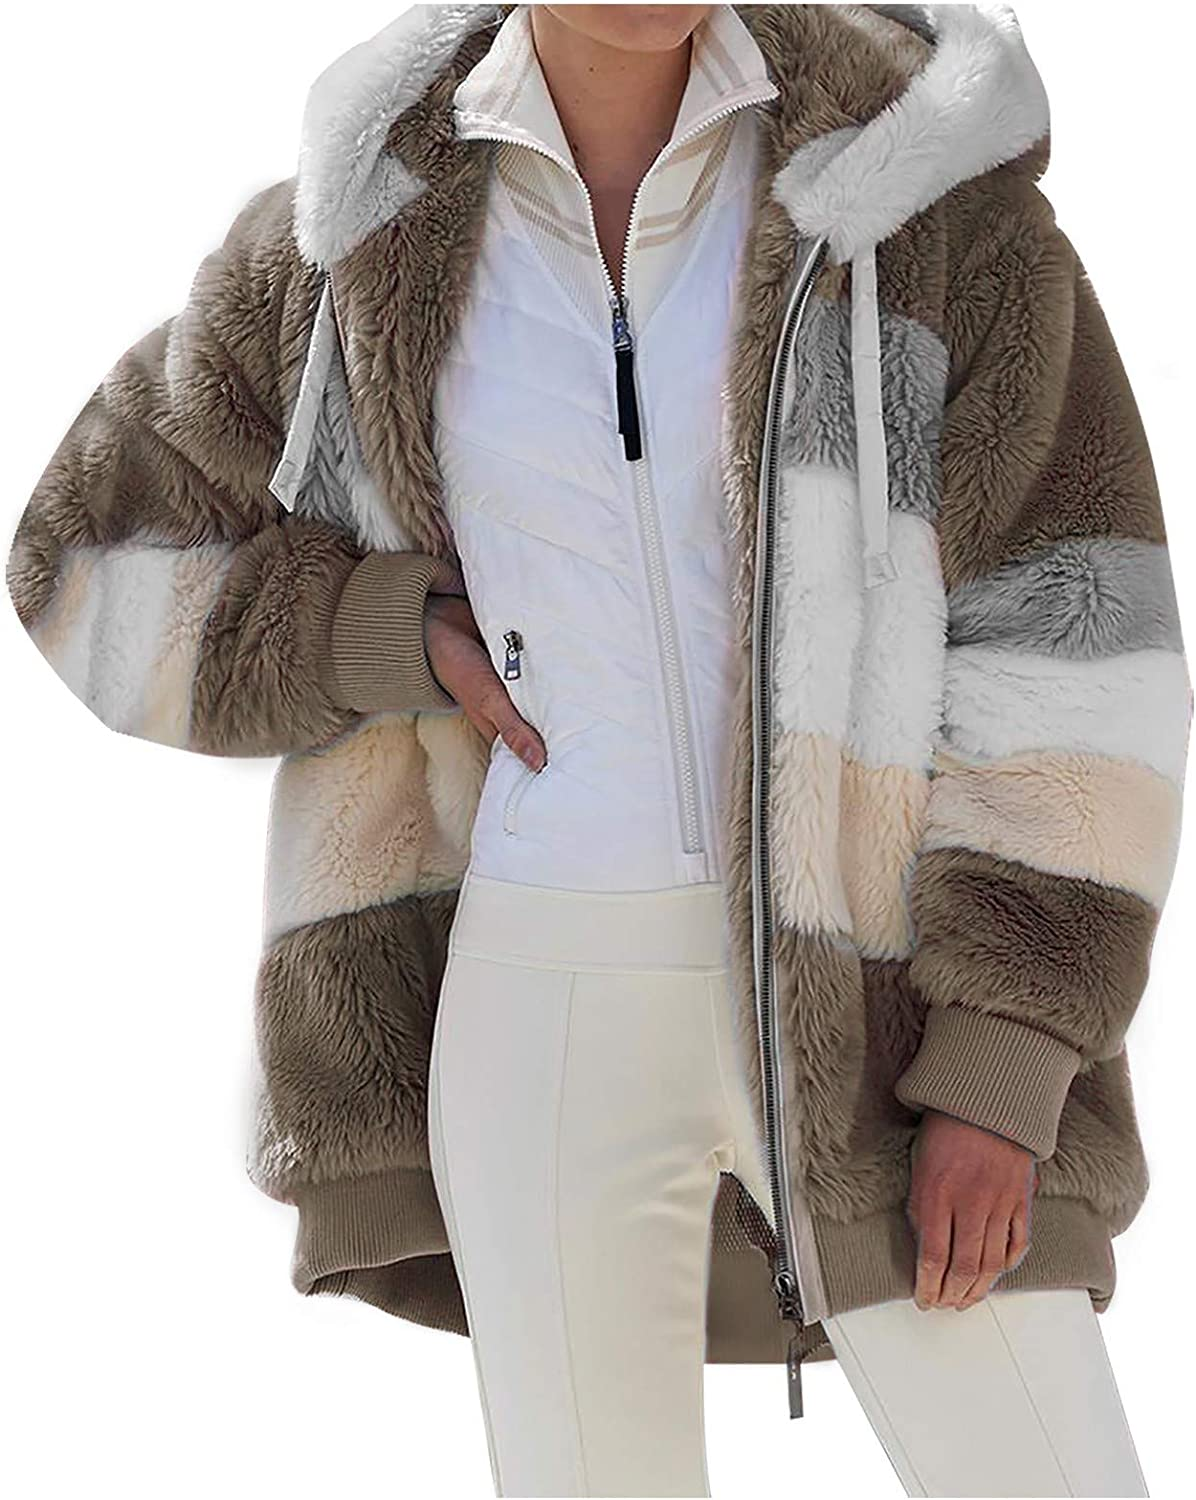 Womens Inexpensive Faux Fur Coat Color Jacket Matching Max 84% OFF Hooded Plu Fuzzy